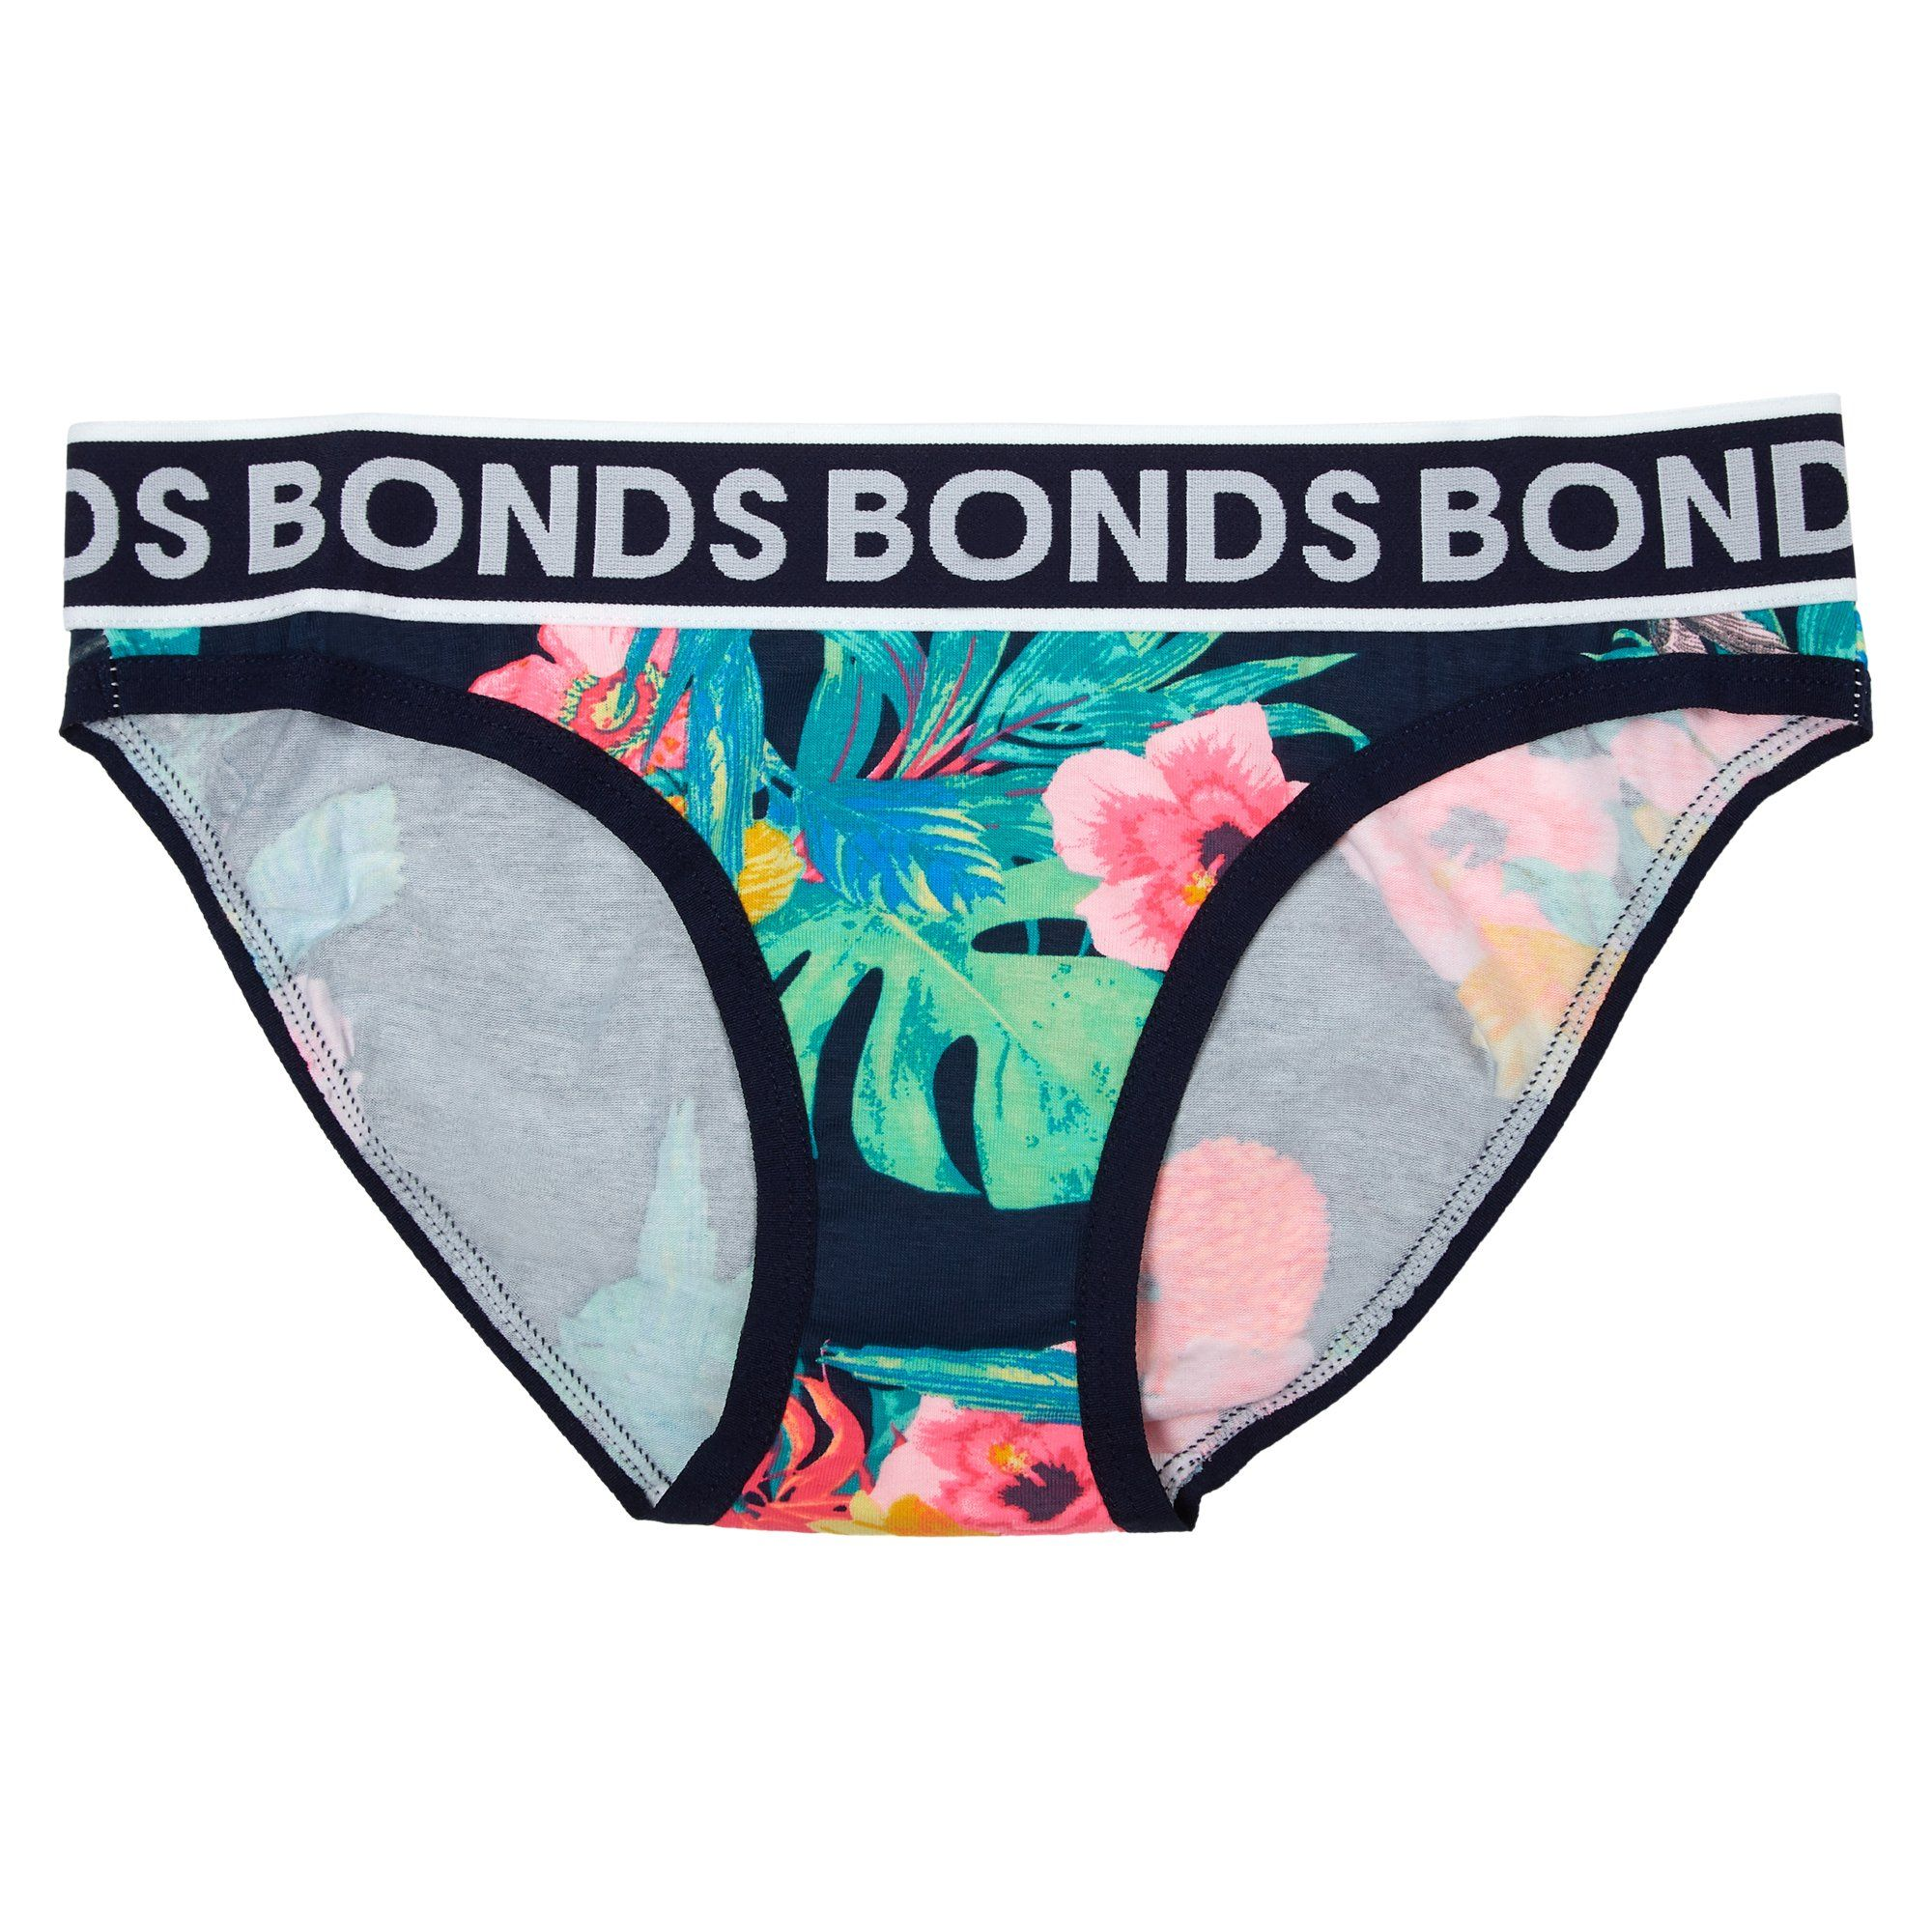 Bonds Children'S Underwear New Era Bikini Ydg - Print 4El Children's Underwear Bonds